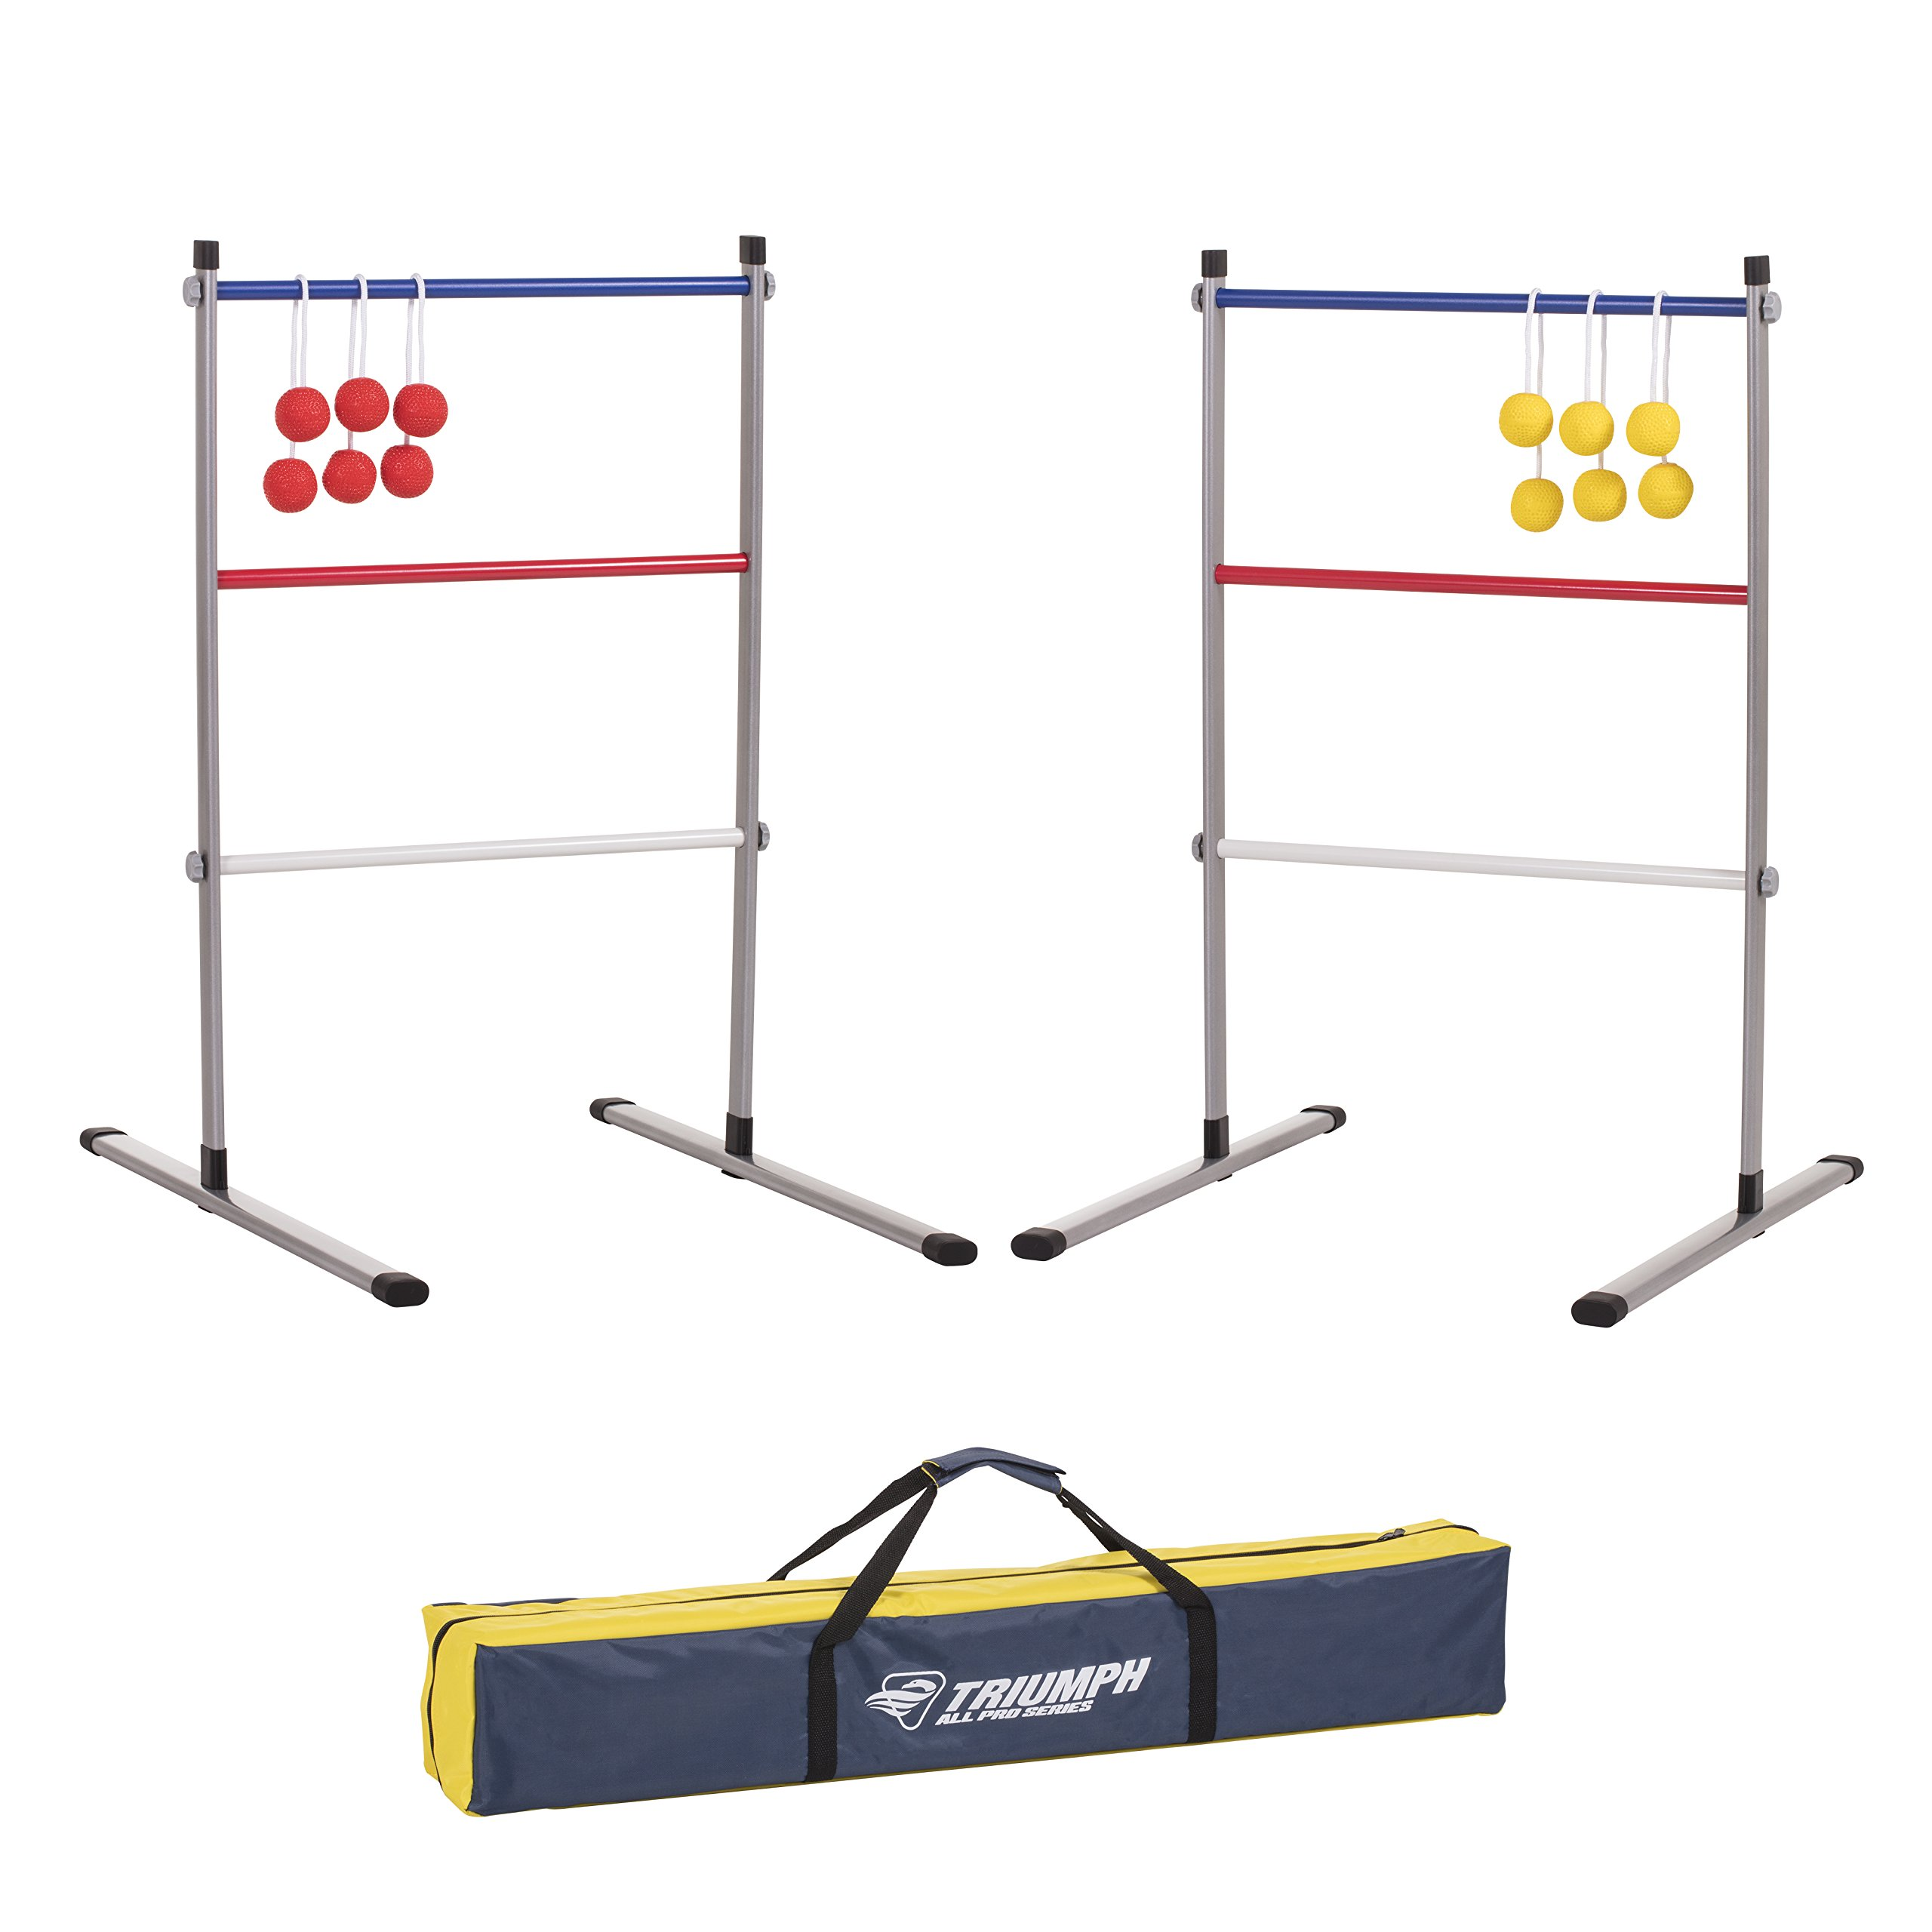 Triumph Competition Metal Ladderball Set